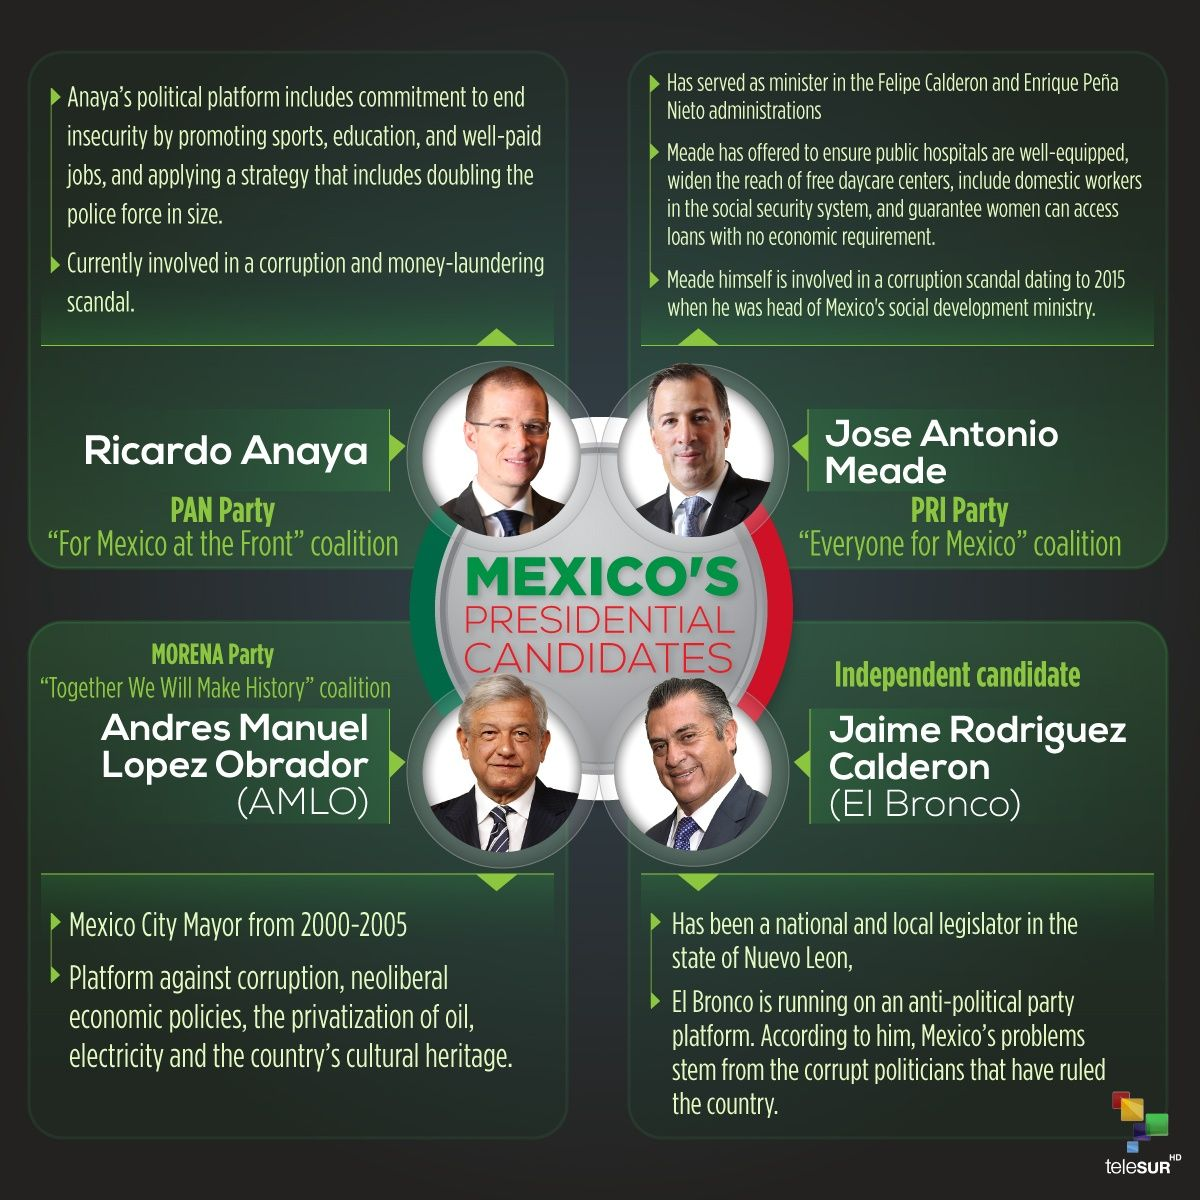 Mexico's Presidential Candidates